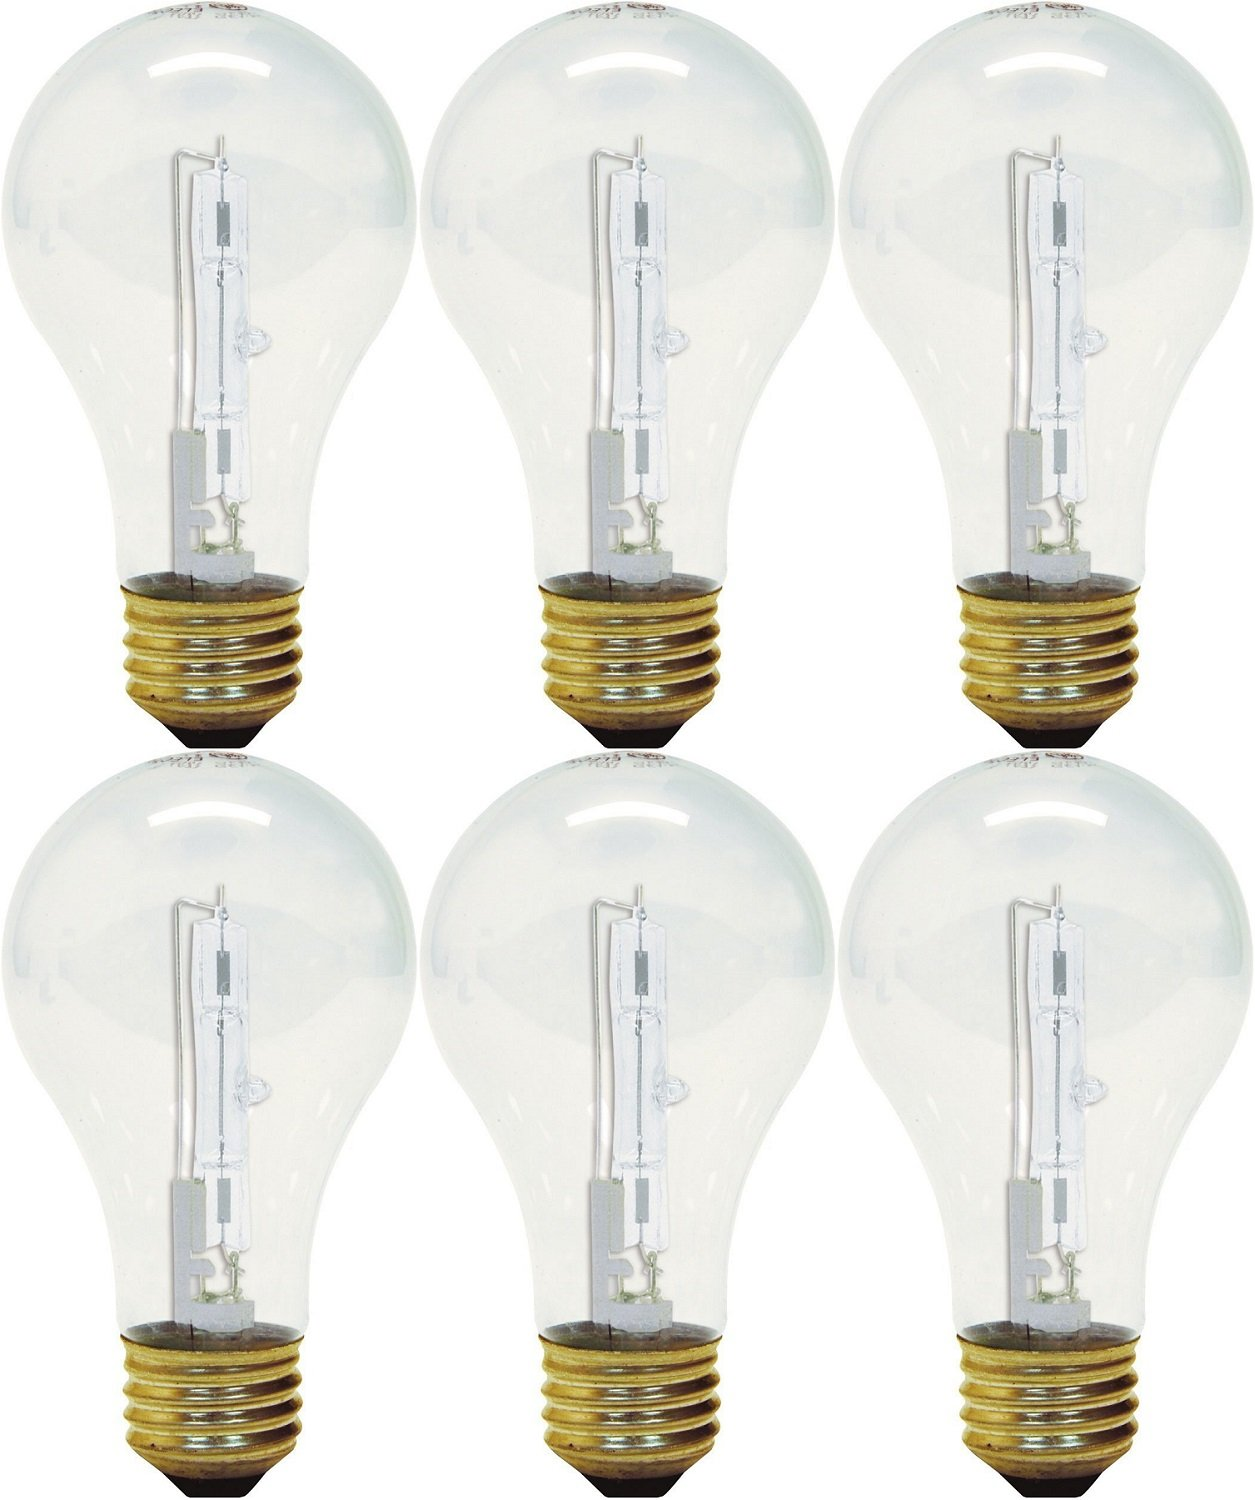 GE Lighting 78796 43 Watt Clear A19 Halogen Light Bulb pack of 3 (each 2 bulbs)